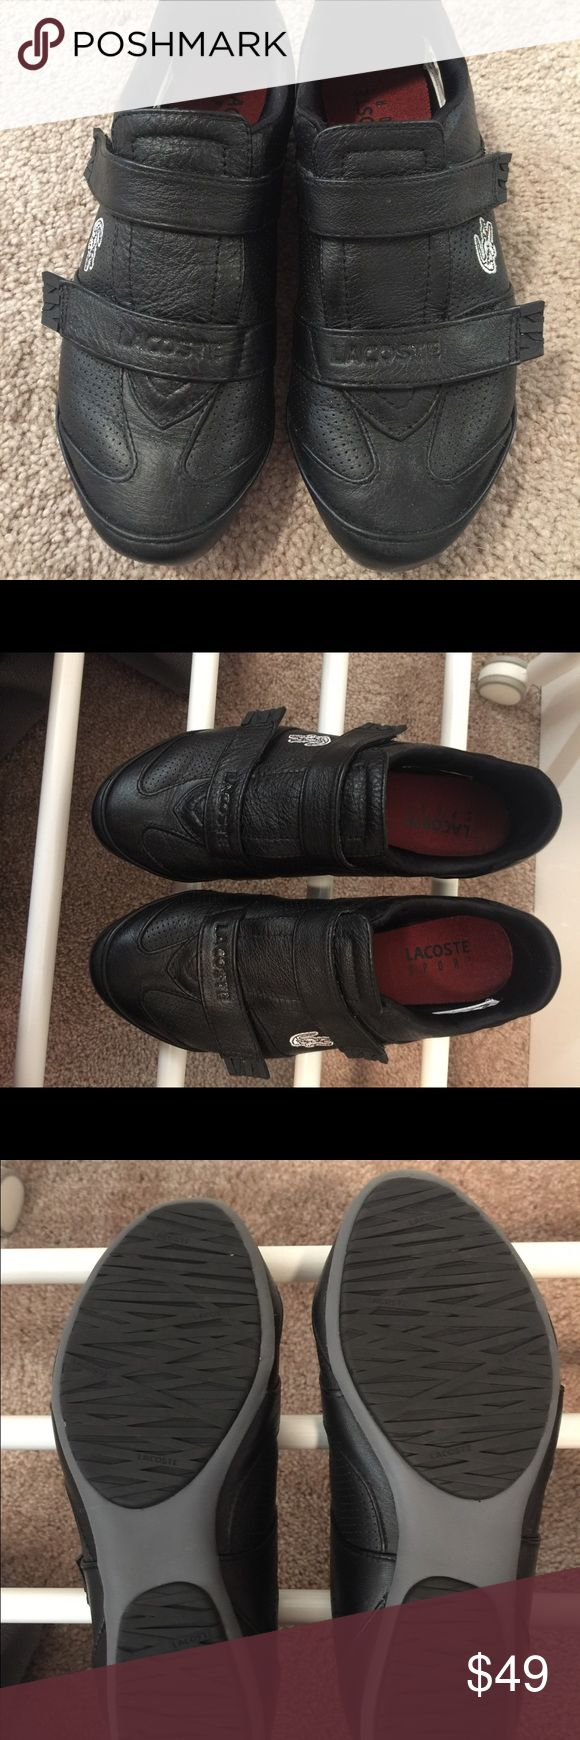 Lacoste leather Sneaker With Velcro Straps SZ 5 This leather Lacoste Sneaker with the velcro straps is so easy to slip on and off.  The leather is soft and and comfortable for walking.  The condition is great, only worn it a few time. Lacoste Shoes Sneakers